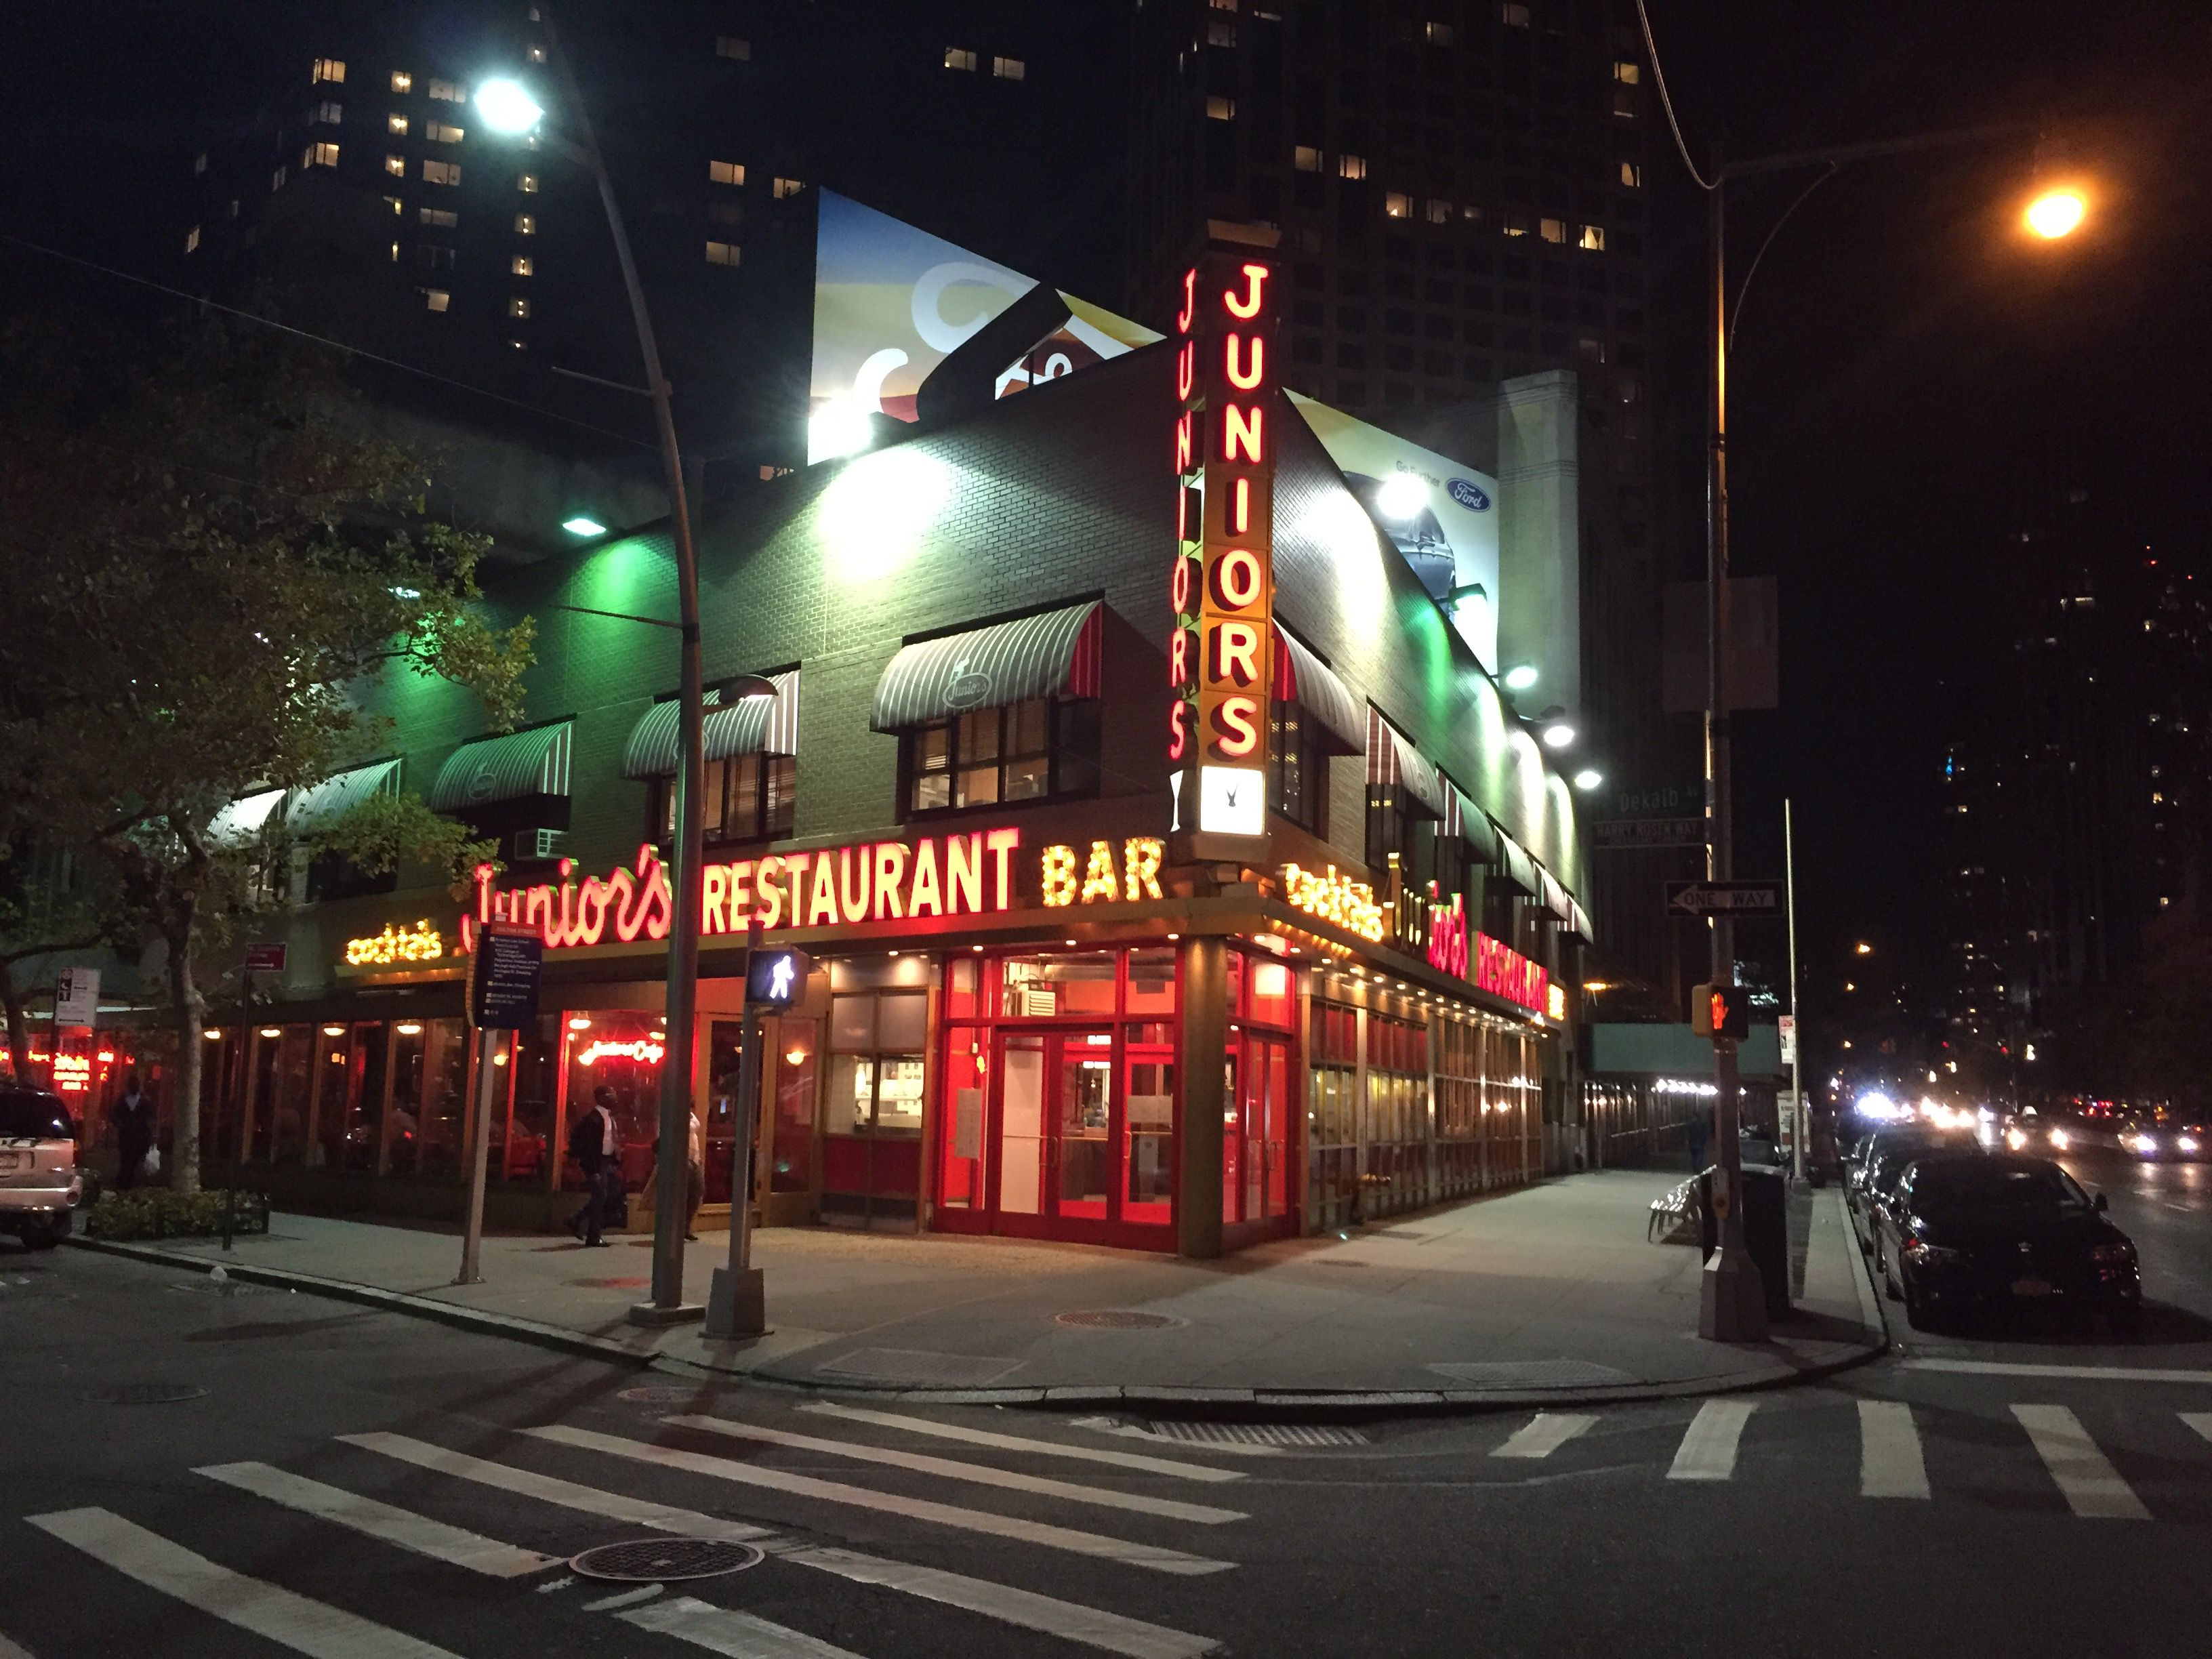 Junior's Restaurant and Bar in Brooklyn lit up at nighttime.